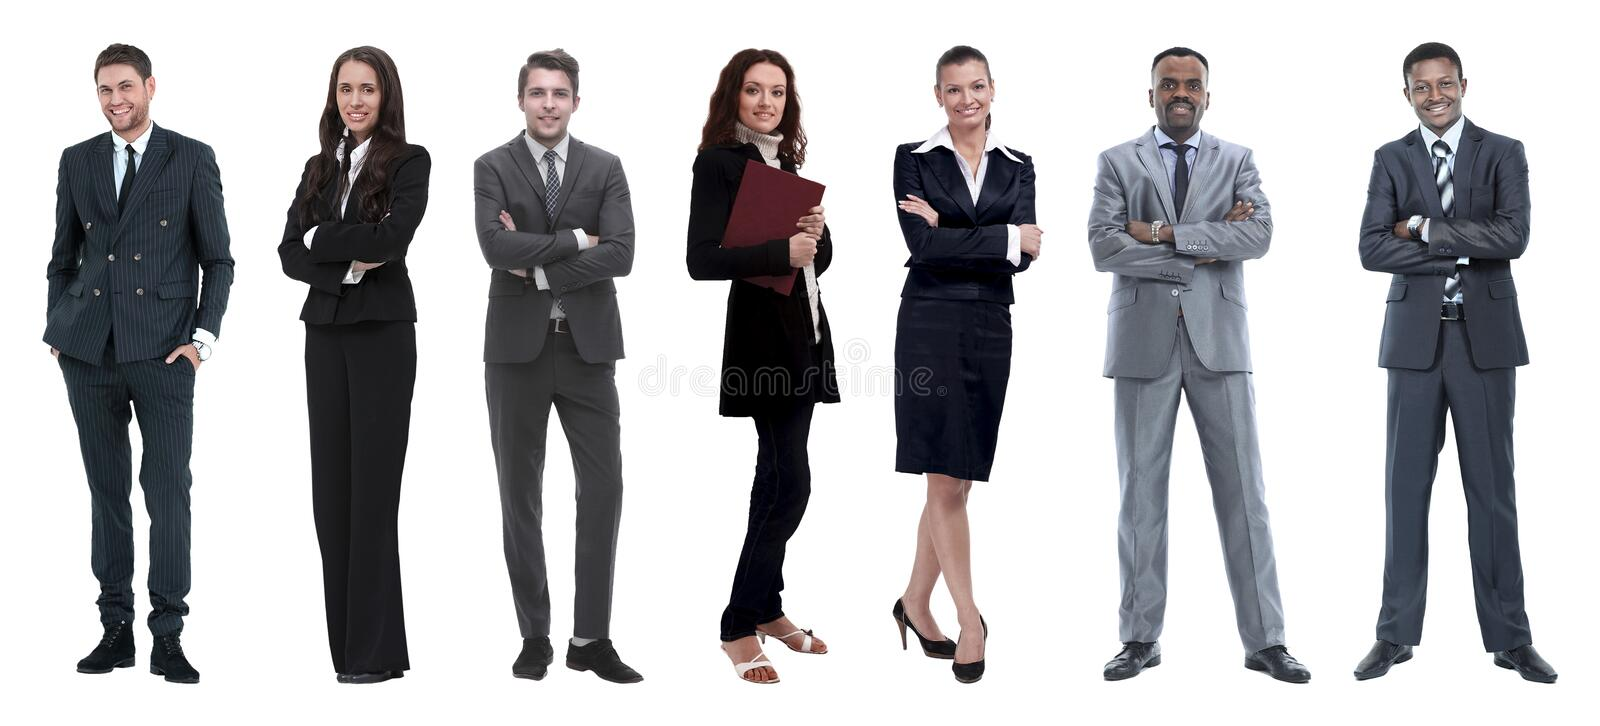 Collage of mixed age group of focused business professionals. Group of smiling business people. Businessman and women team stock photography